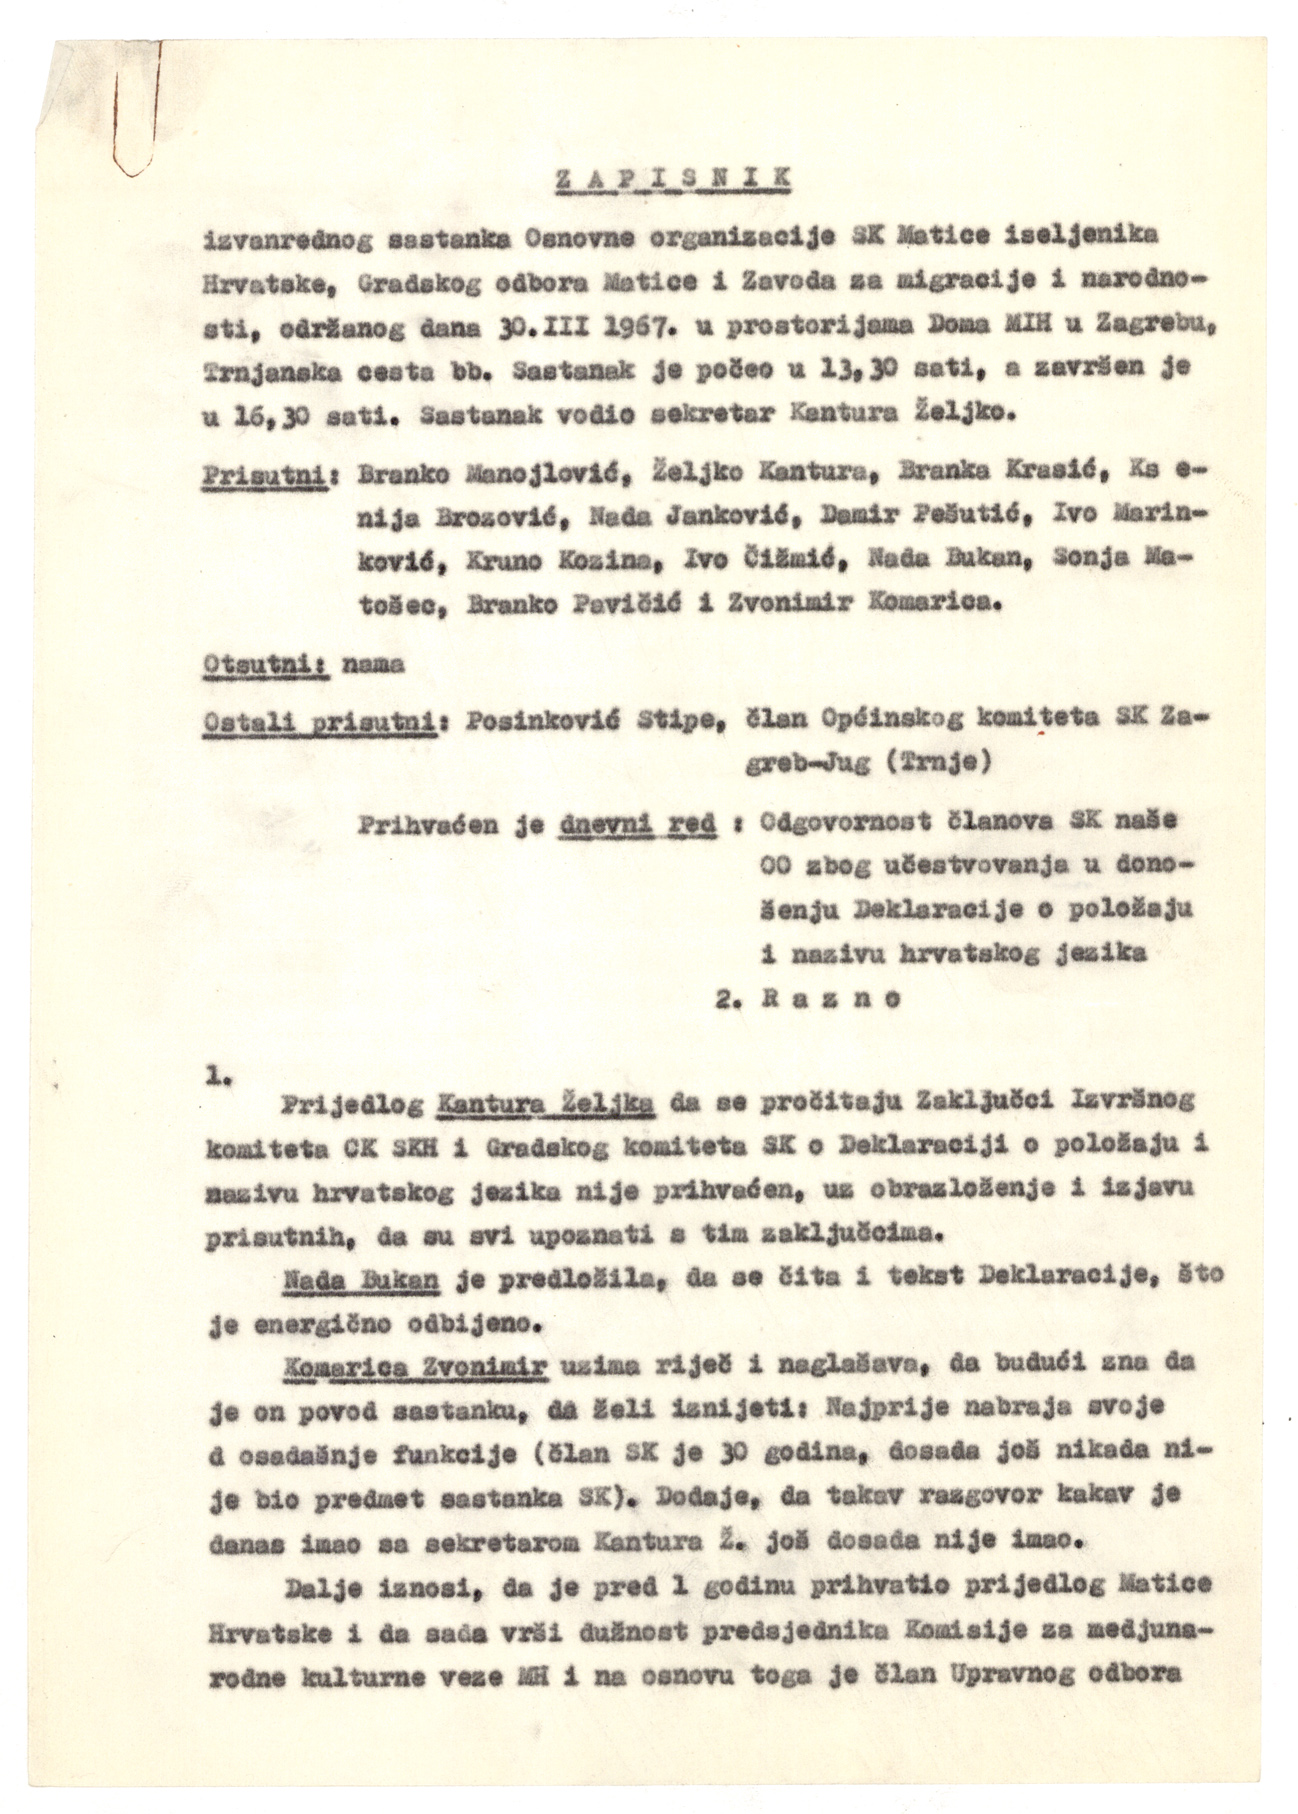 The first page of the minutes.